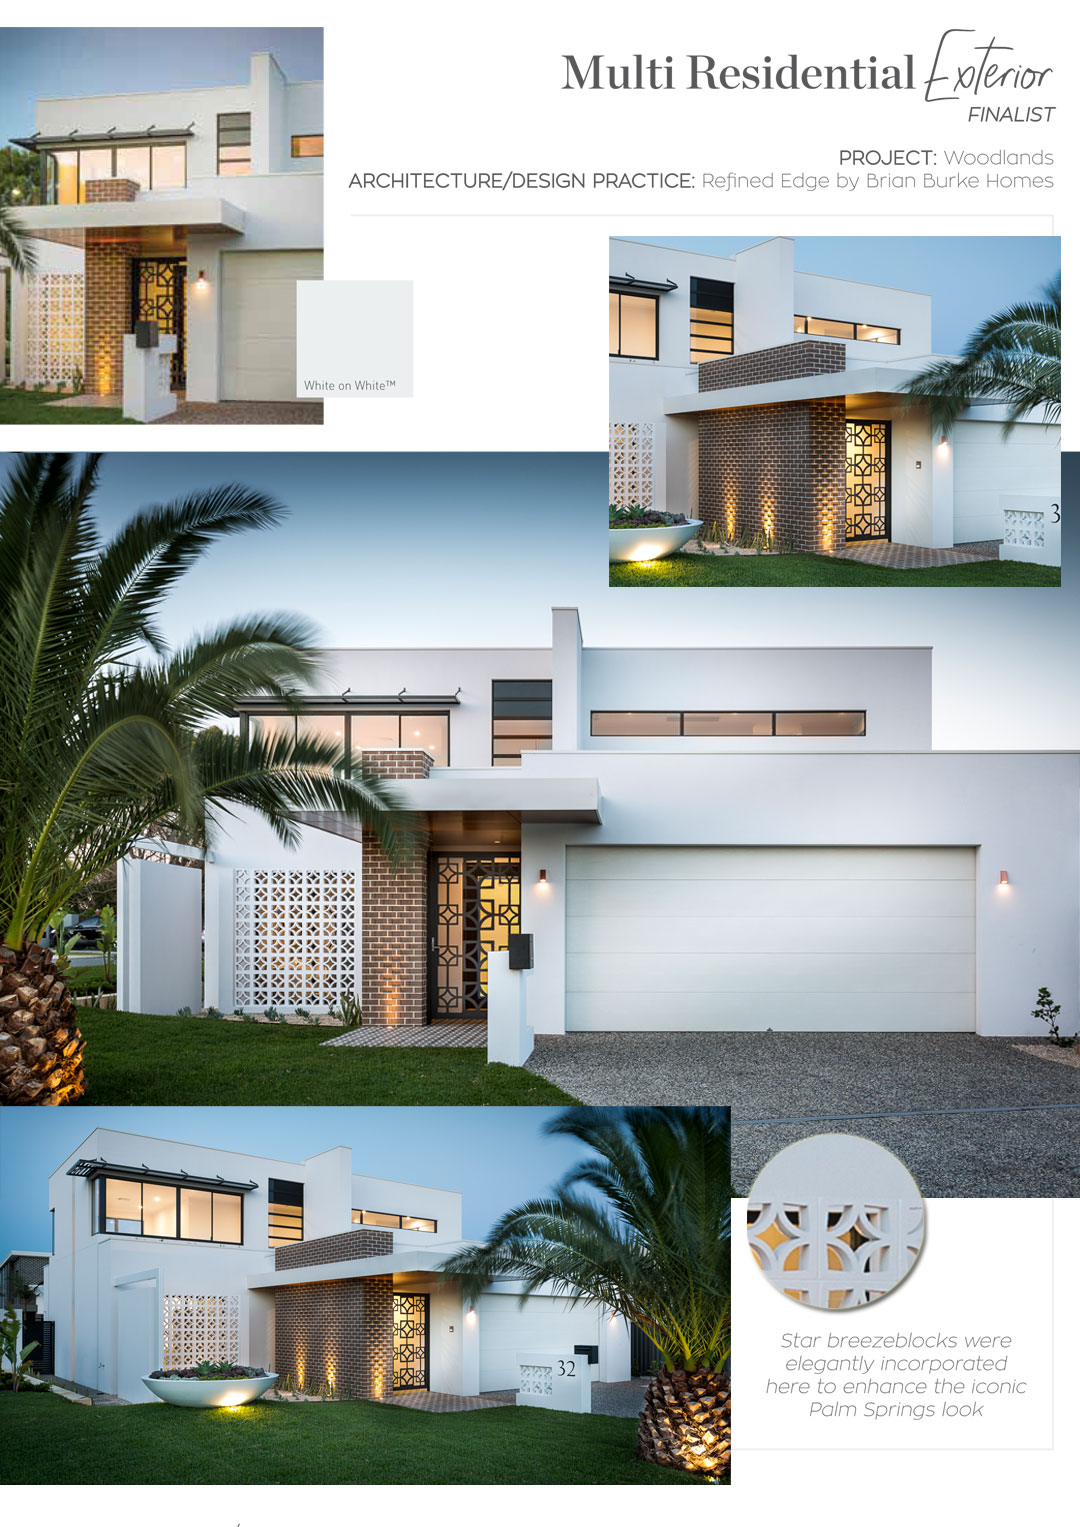 Refined Edge by Brian Burke Homes